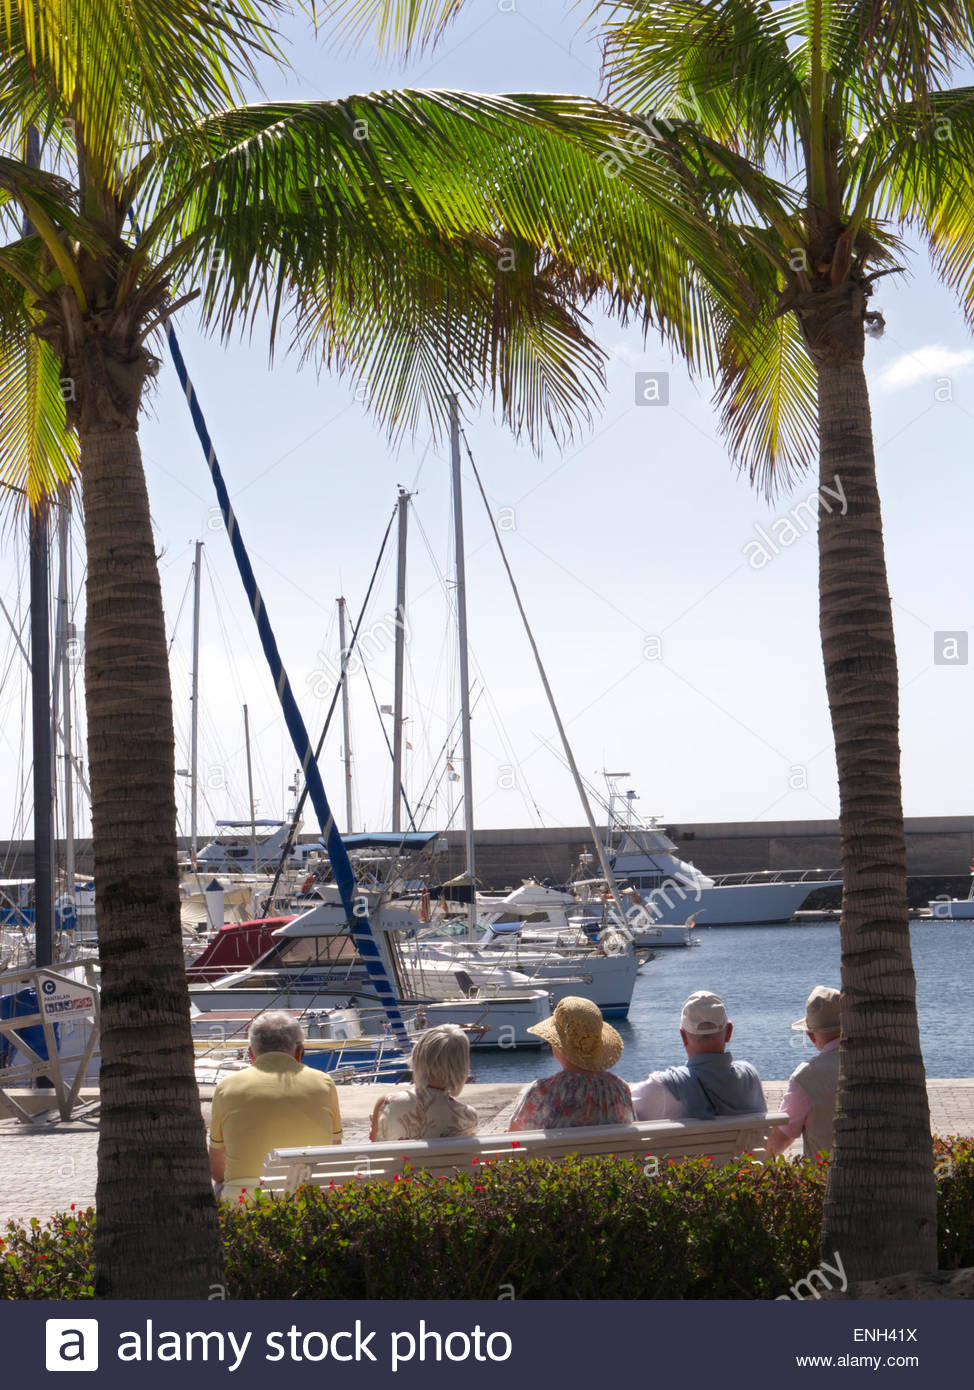 Group of elderly pensioner holidaymakers sitting sunbathing on bench enjoying the marina view at Puerto Calero Lanzarote - Stock Image